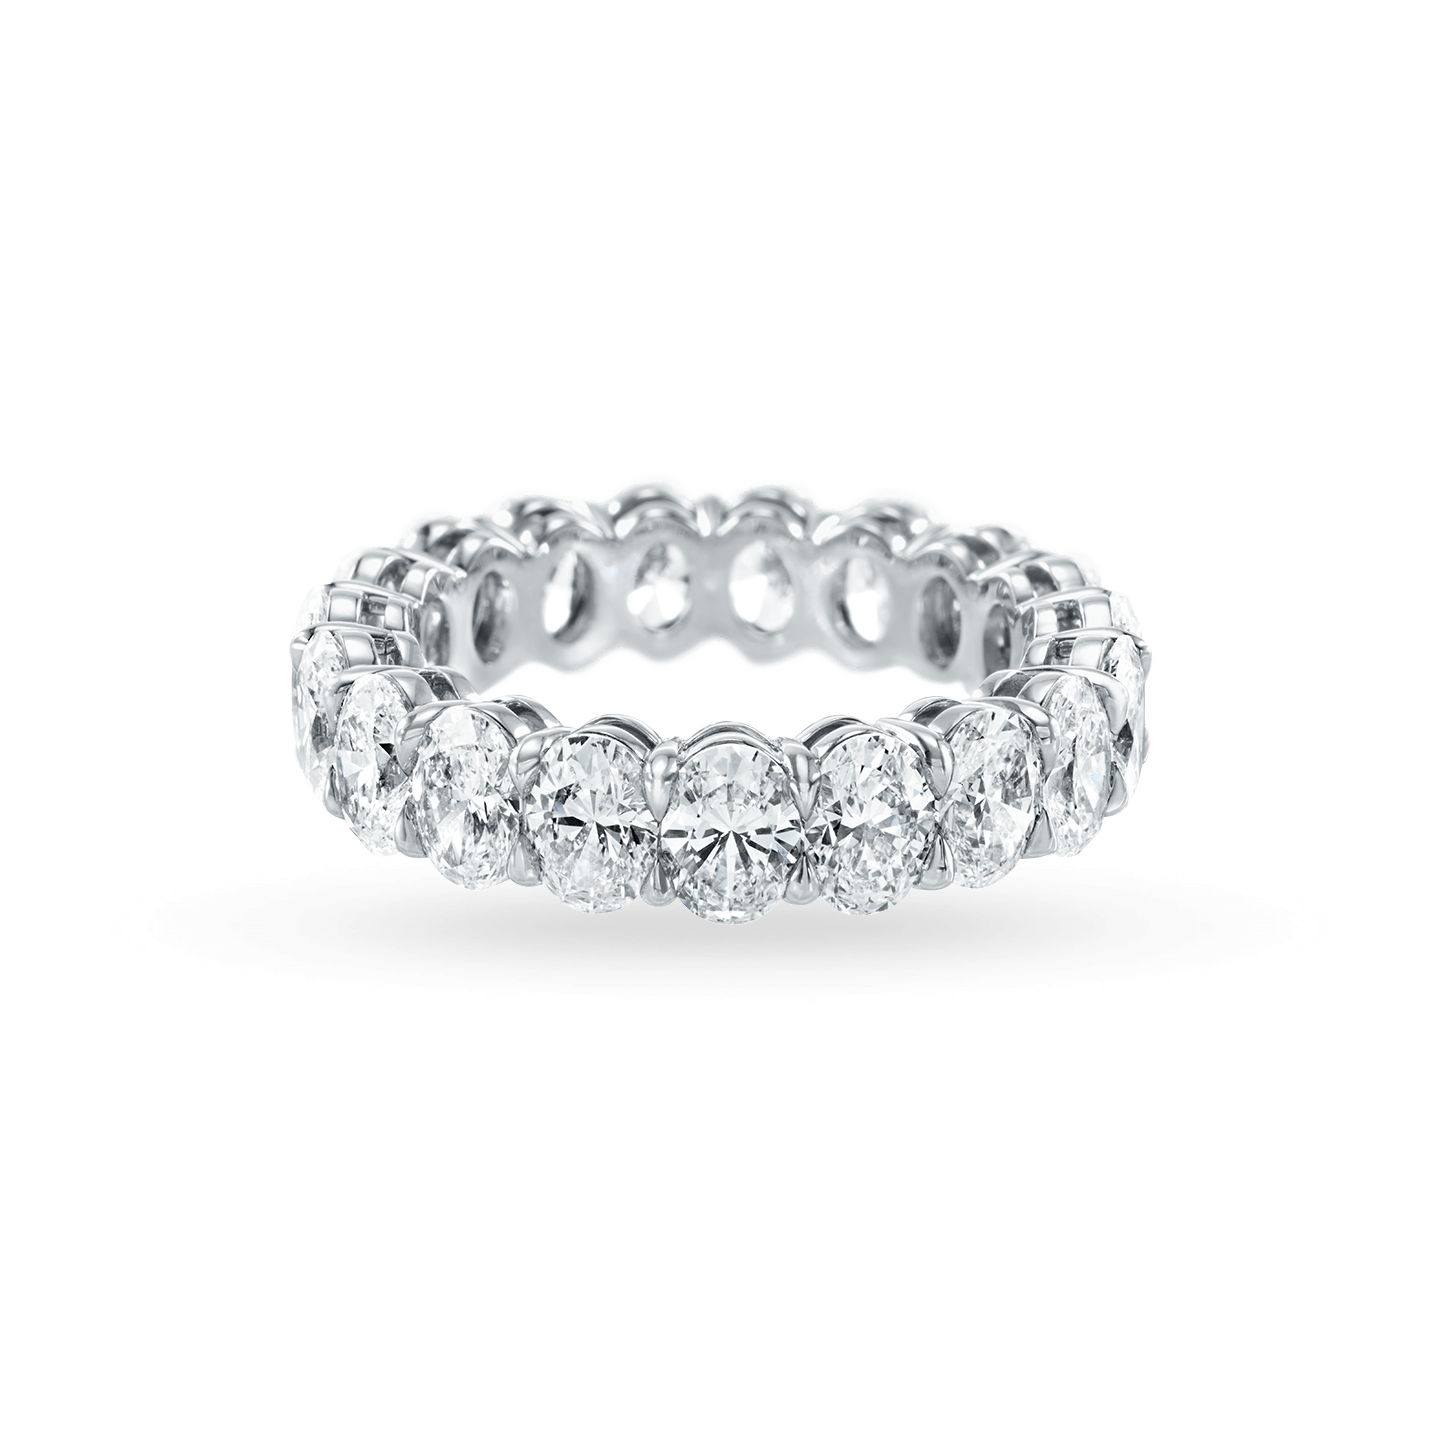 Prong-Set Oval-Shaped Diamond Wedding Band, Product Image 2